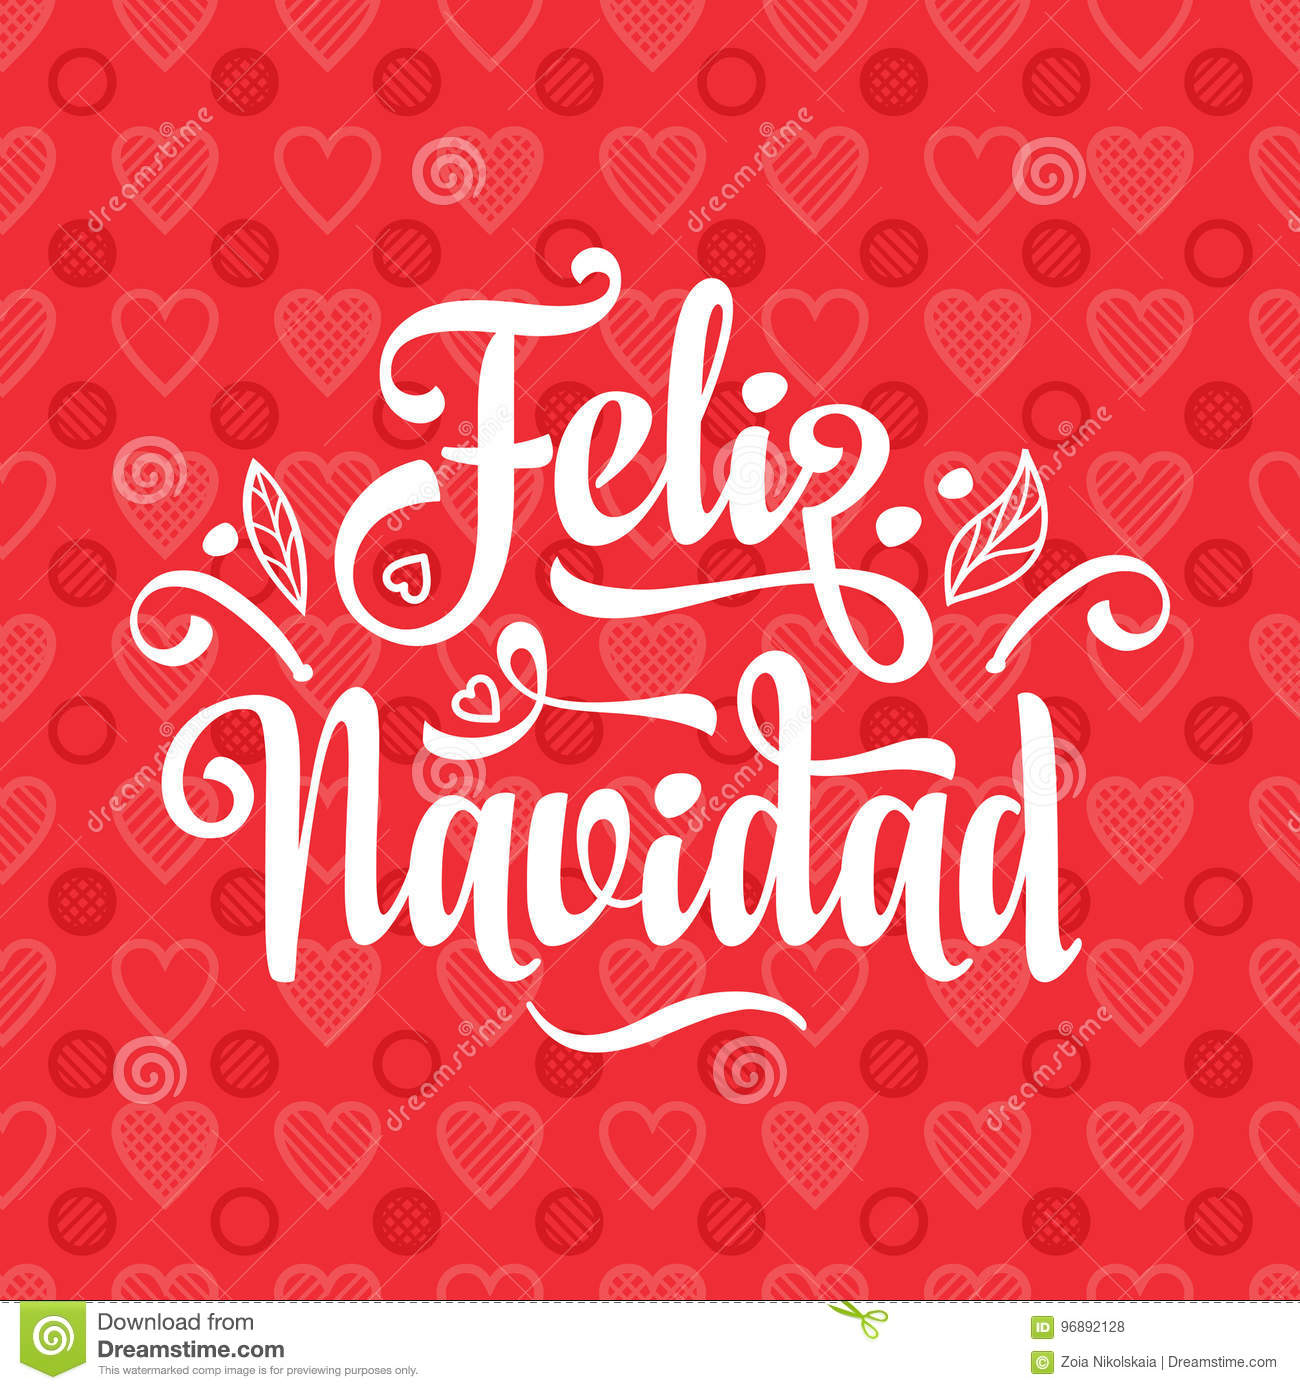 how do you say merry christmas in spanish christmas cards - How Do You Say Merry Christmas In Spanish